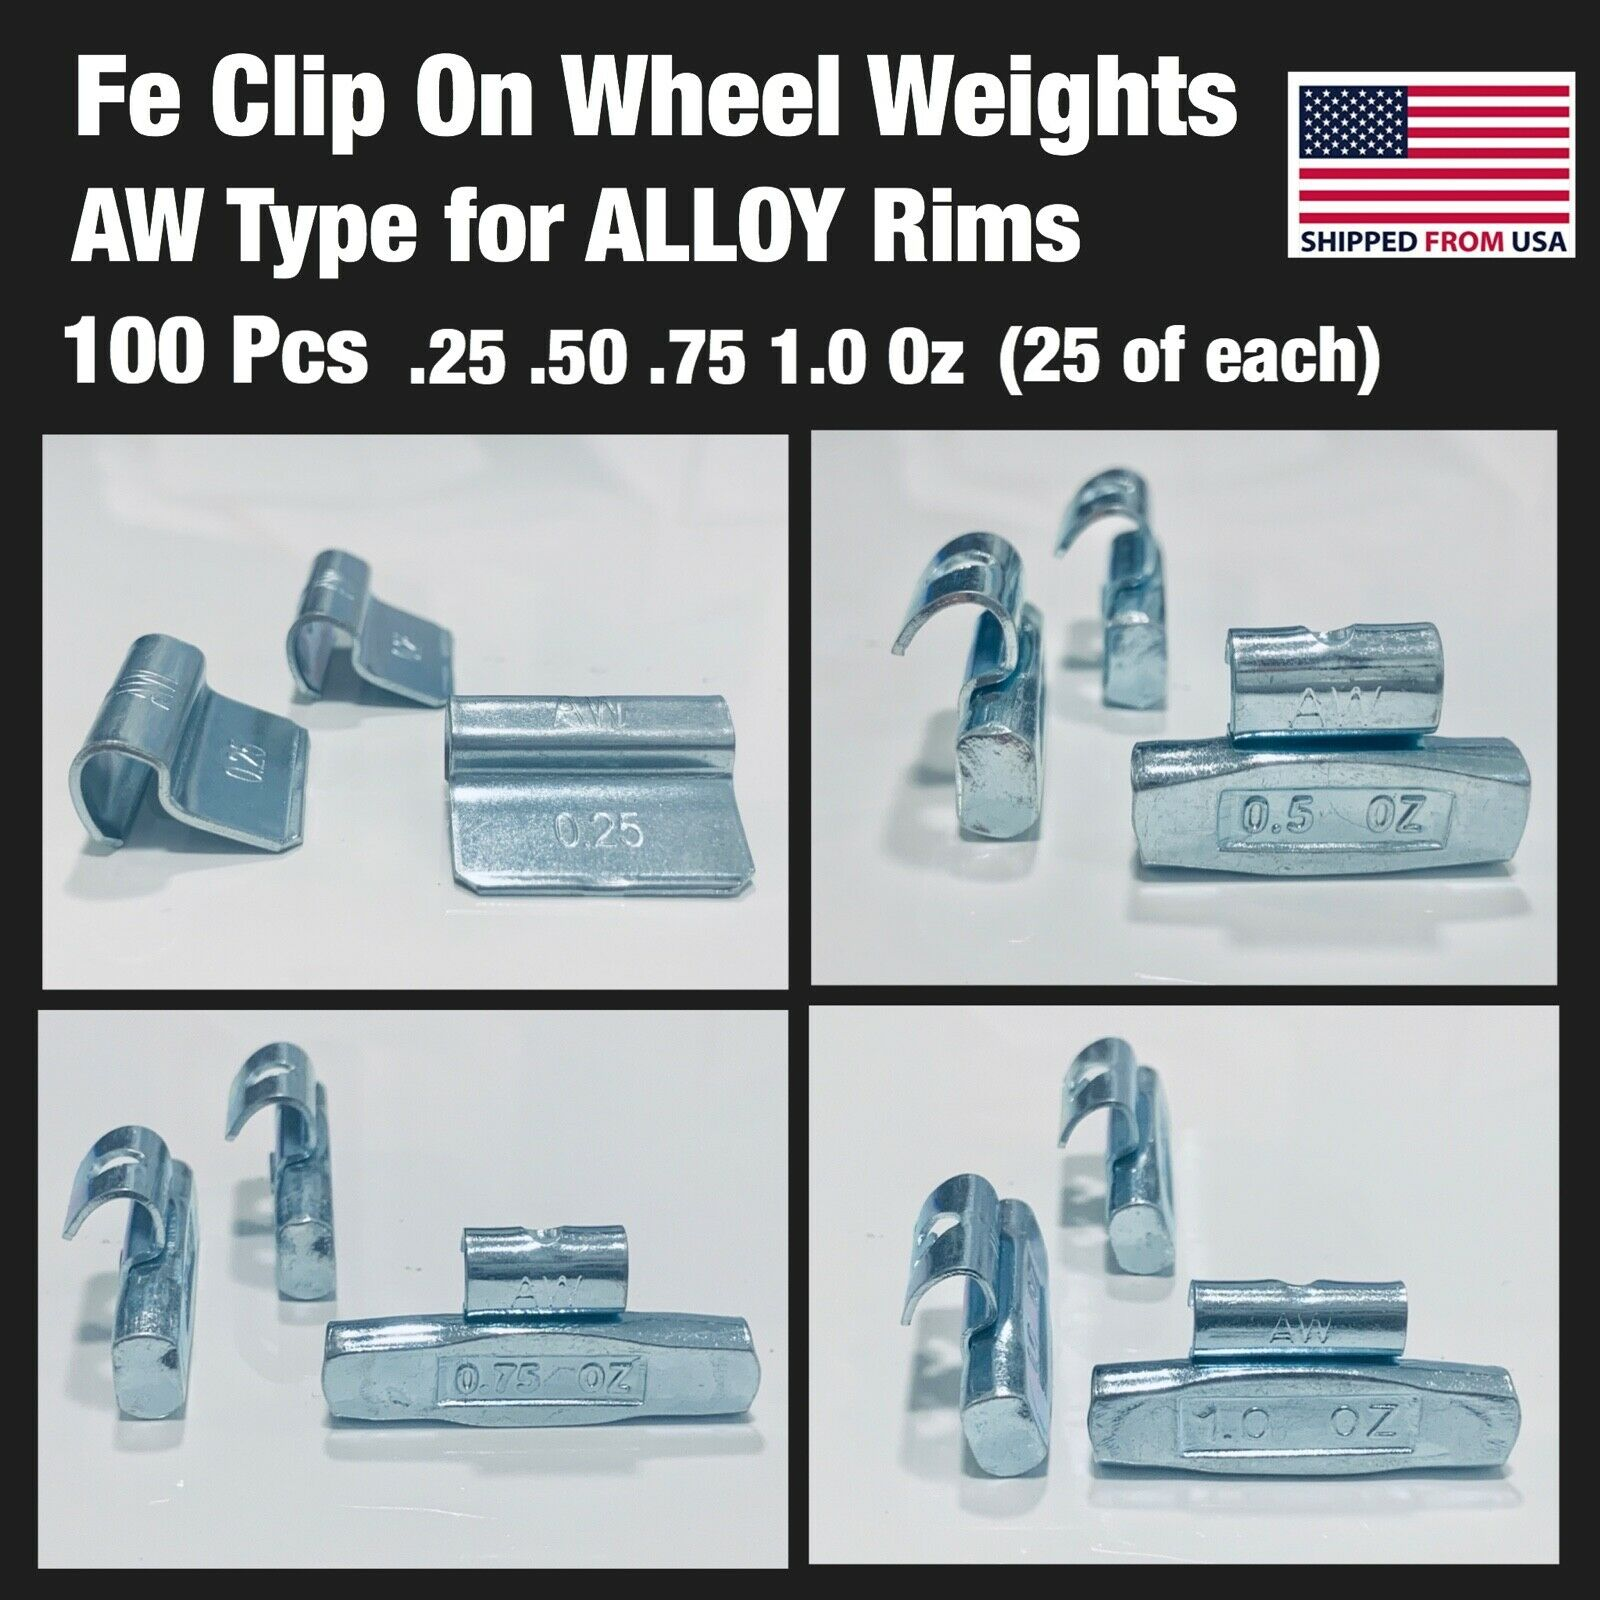 100 PIECES FE CLIP ON WHEEL WEIGHTS .25 .50 .75 1.0 (25 each) ALLOY RIM AW TYPE